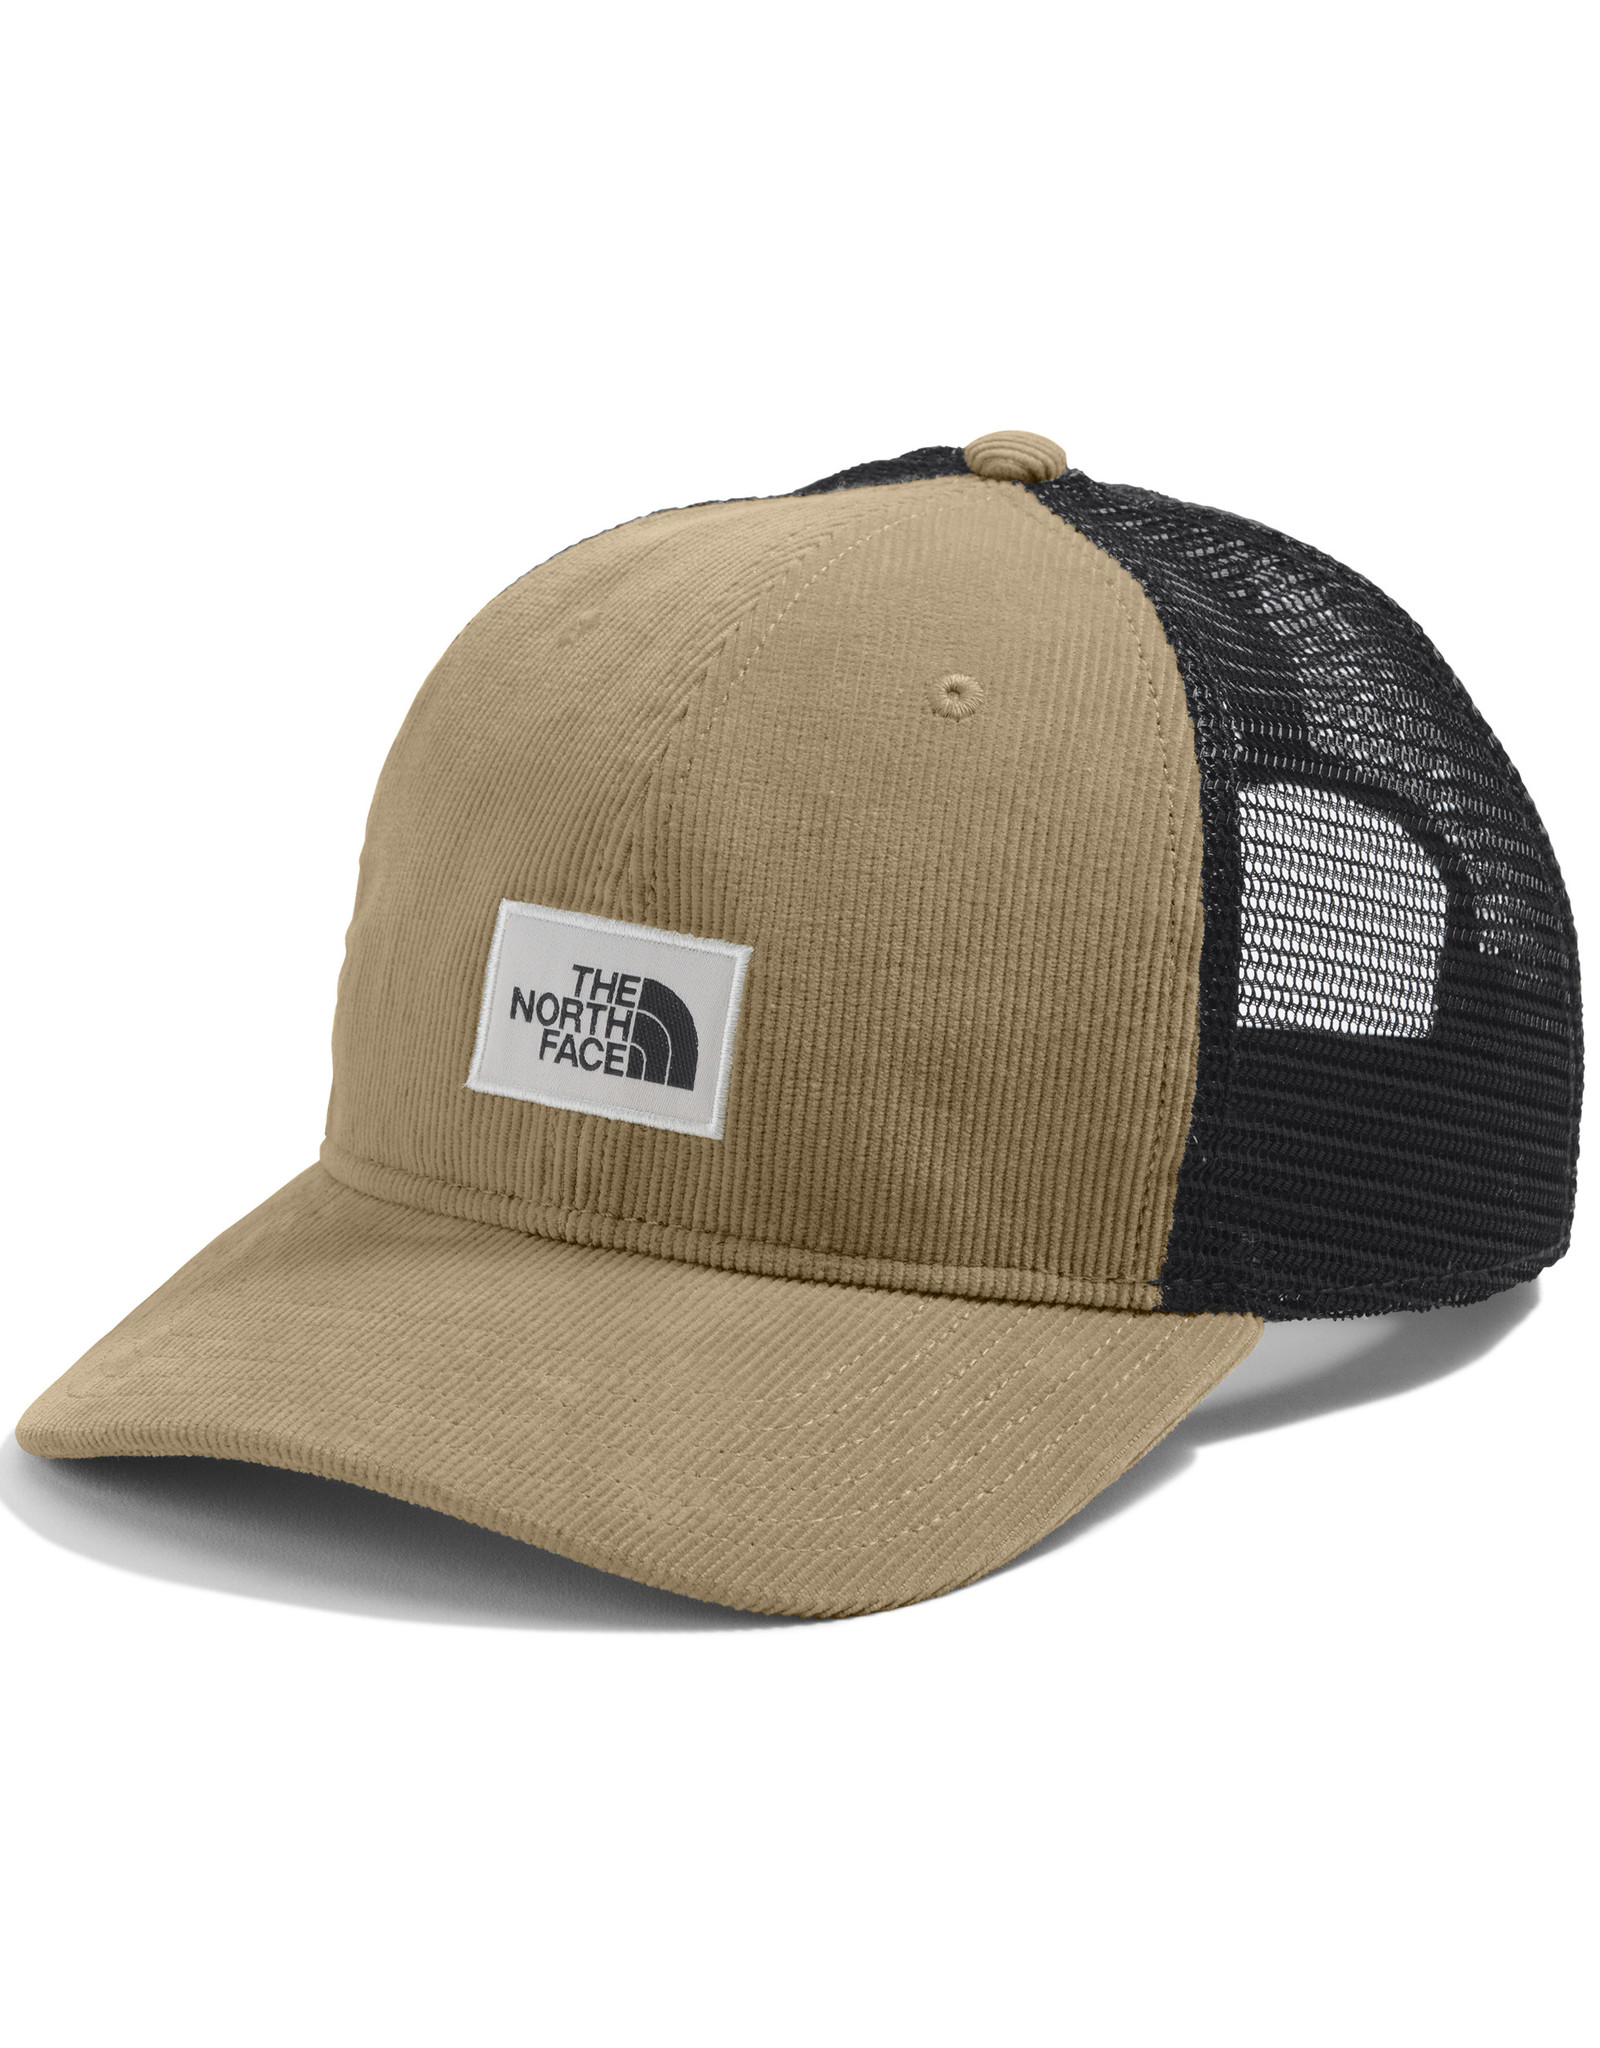 The North Face The North Face Unstructured Trucker - S2020